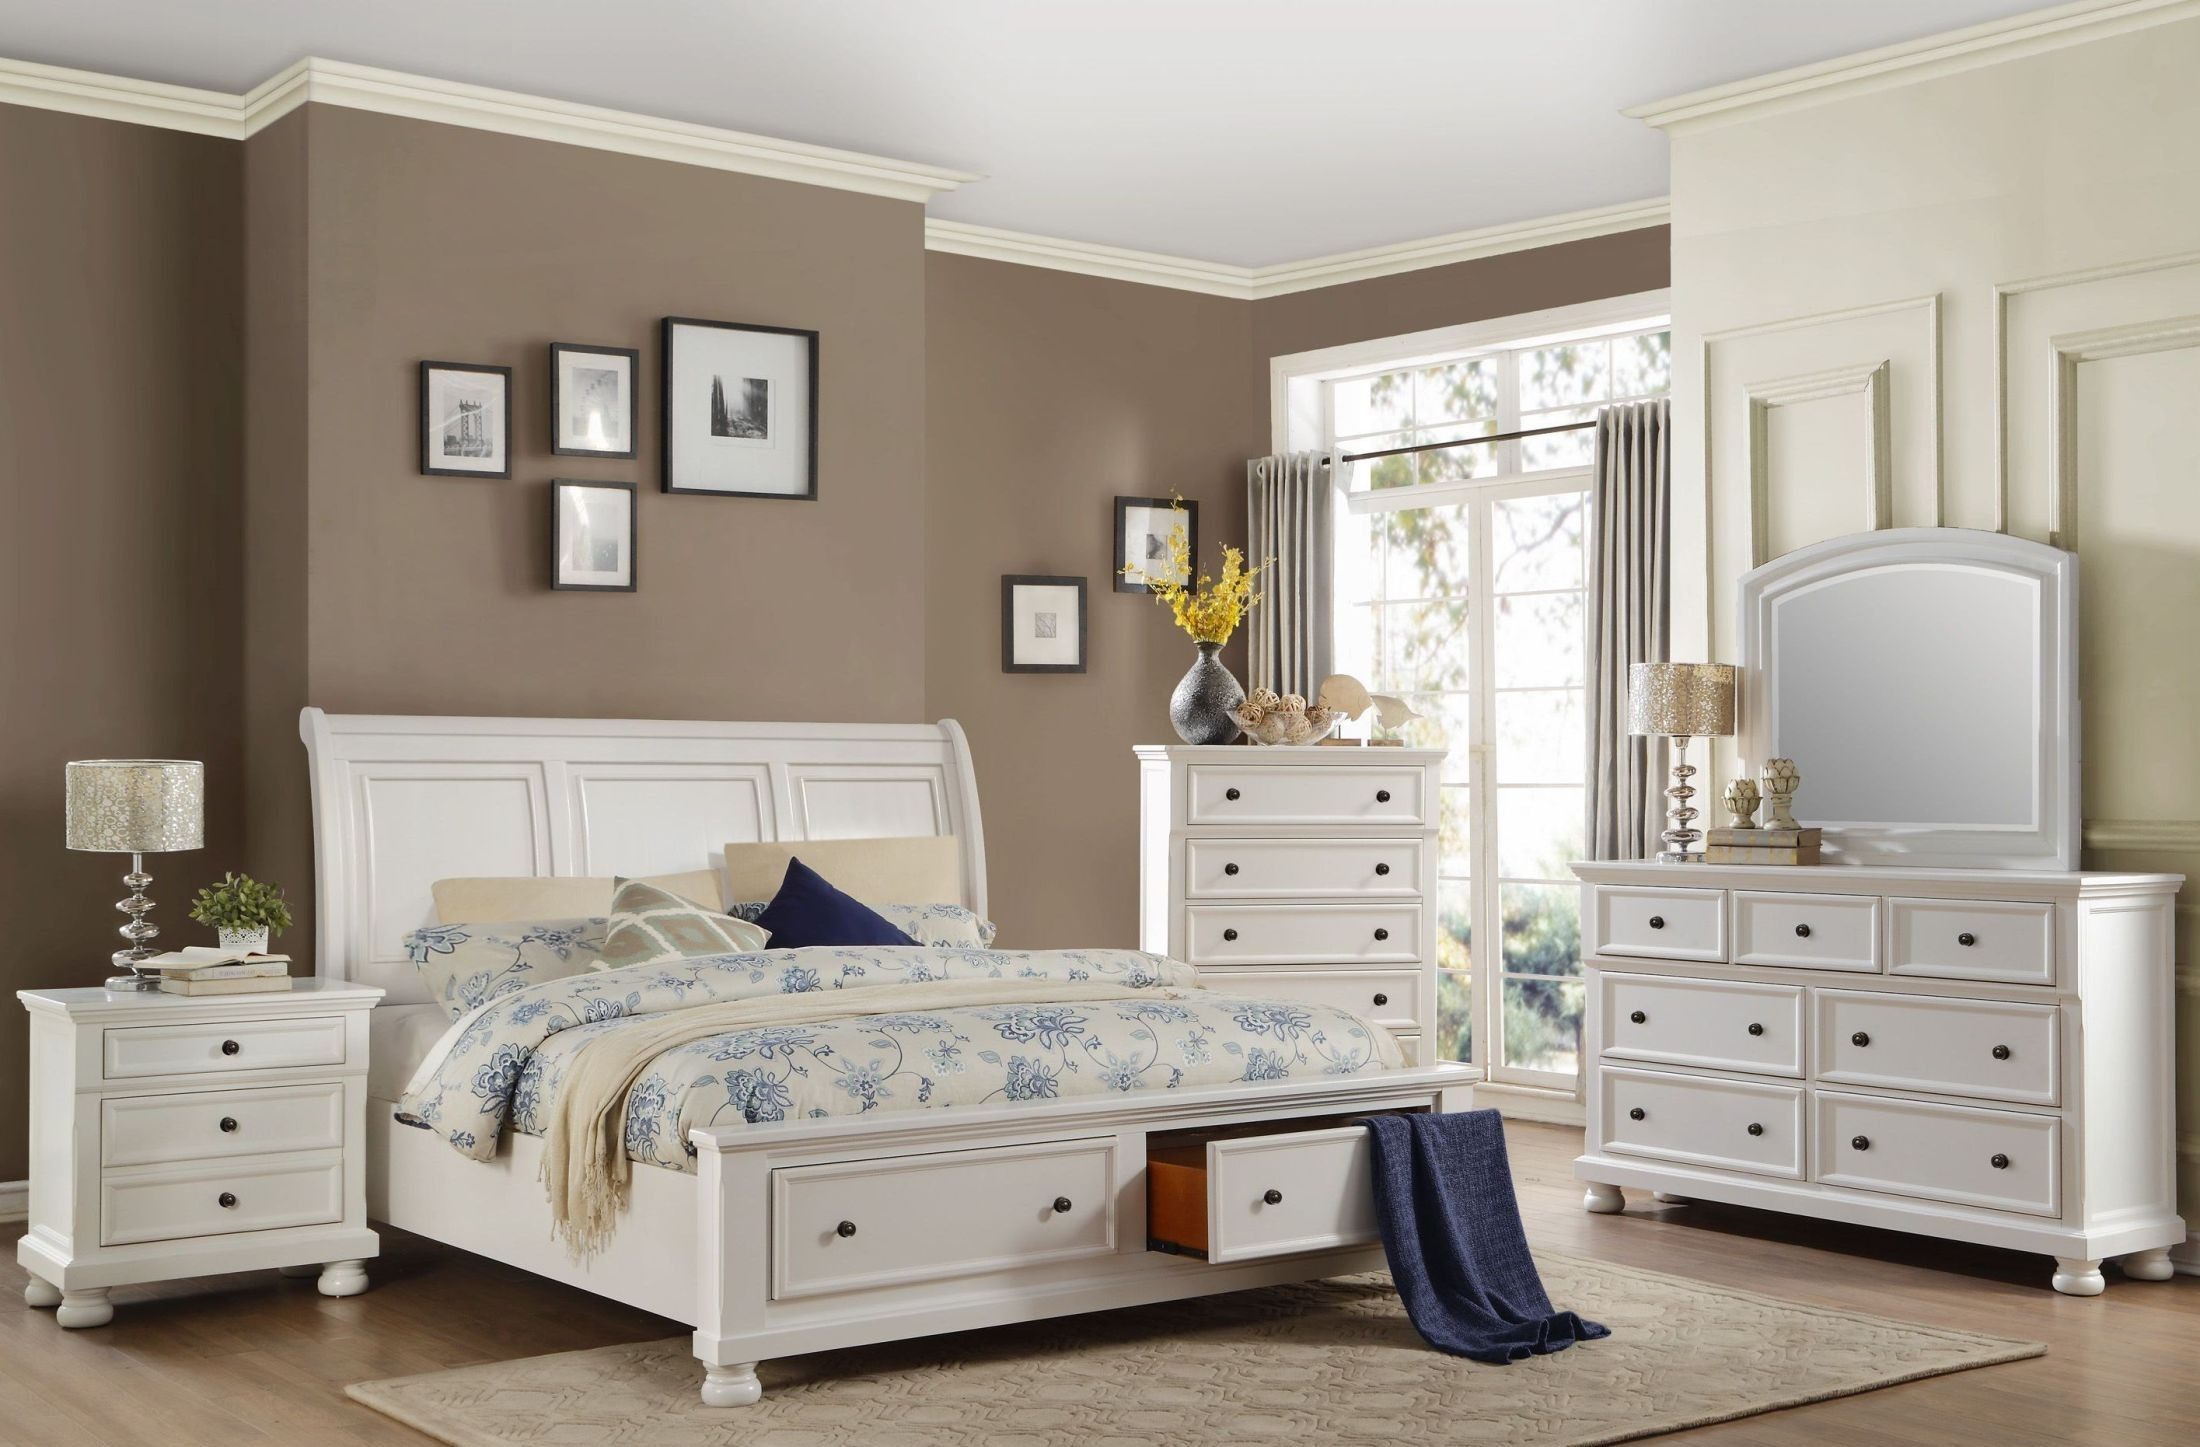 Laurelin White Cal King Sleigh Storage Bed From Homelegance Coleman Furniture